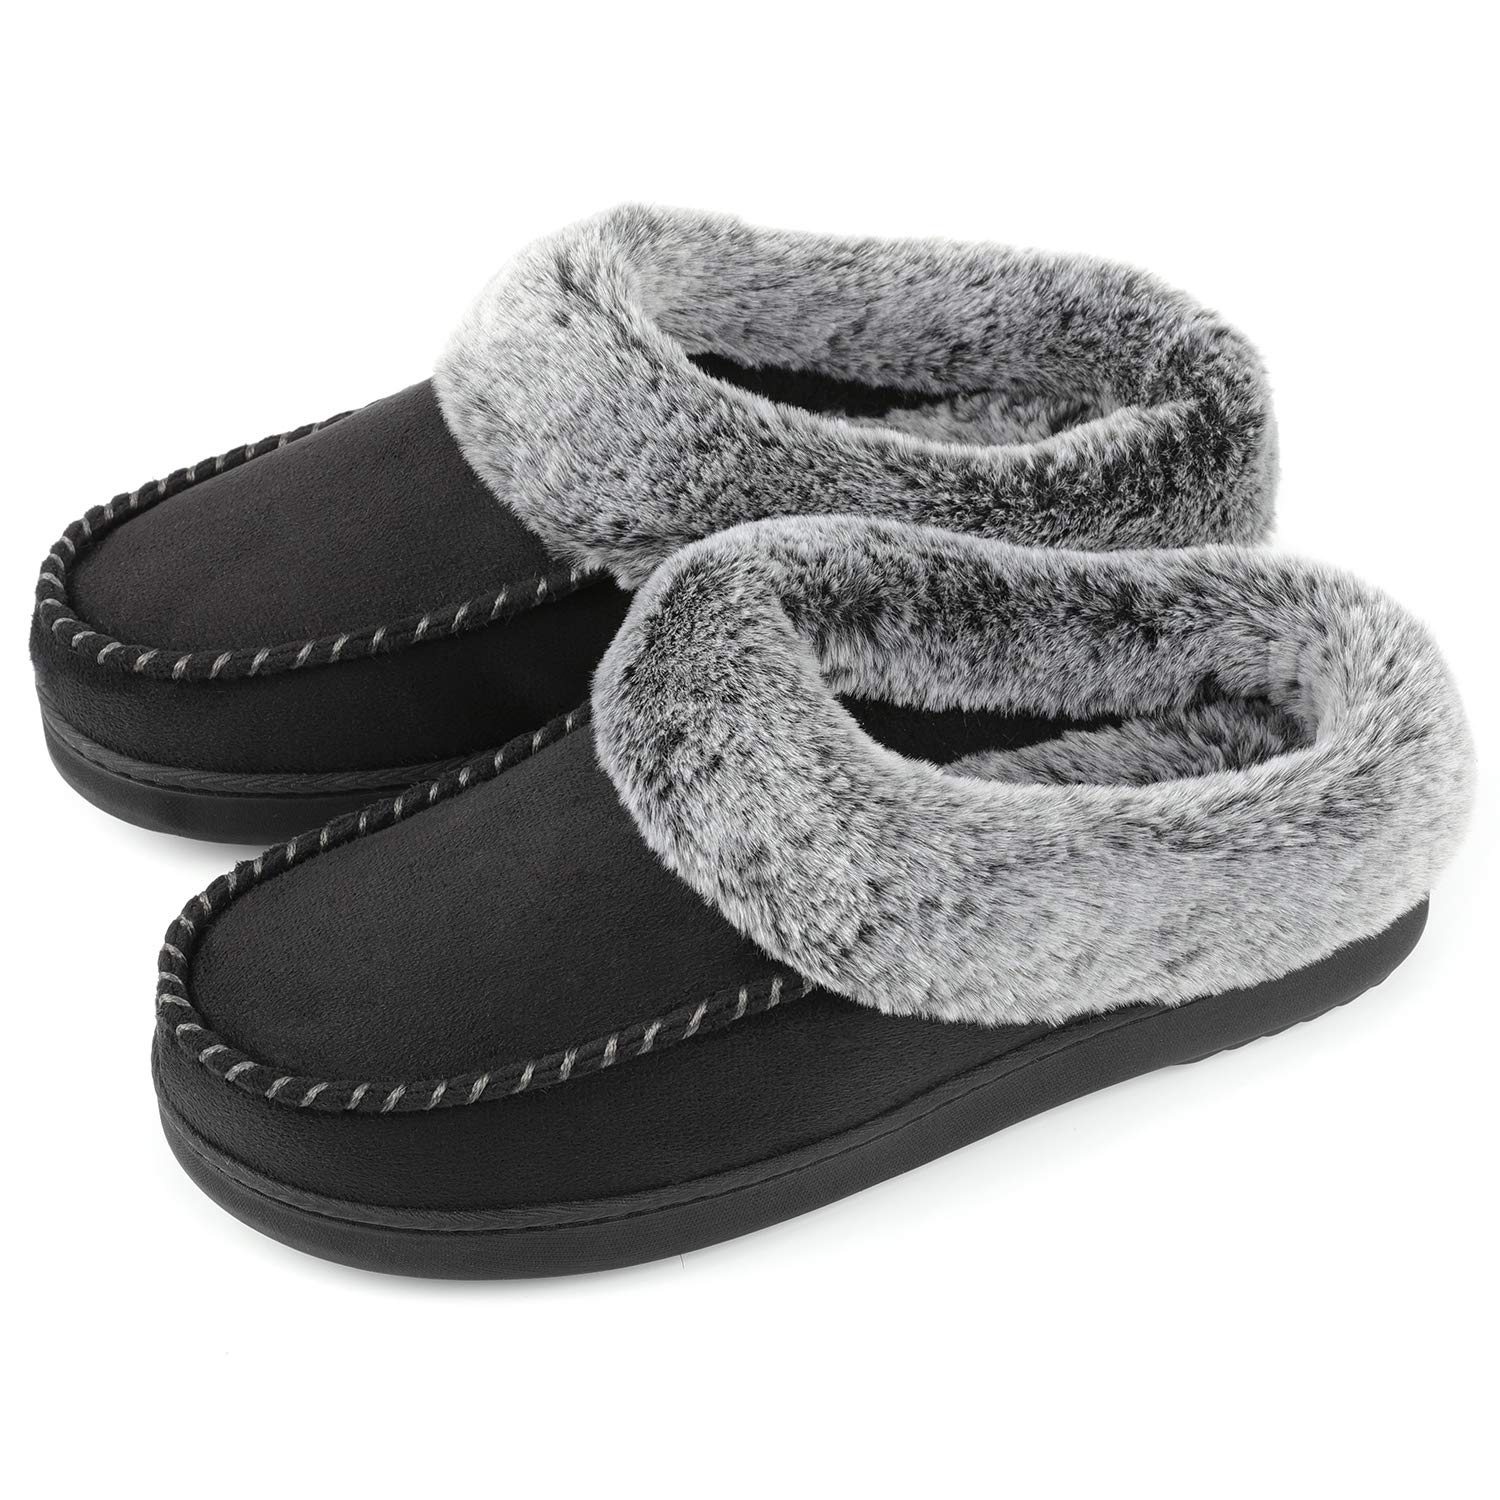 ULTRAIDEAS Women's Cozy Memory Foam Moccasin Suede Slippers with Fuzzy Plush Faux Fur Lining, Ladies' Slip on Mules Clogs House Shoes with Indoor Outdoor Anti-Skid Rubber Sole Black